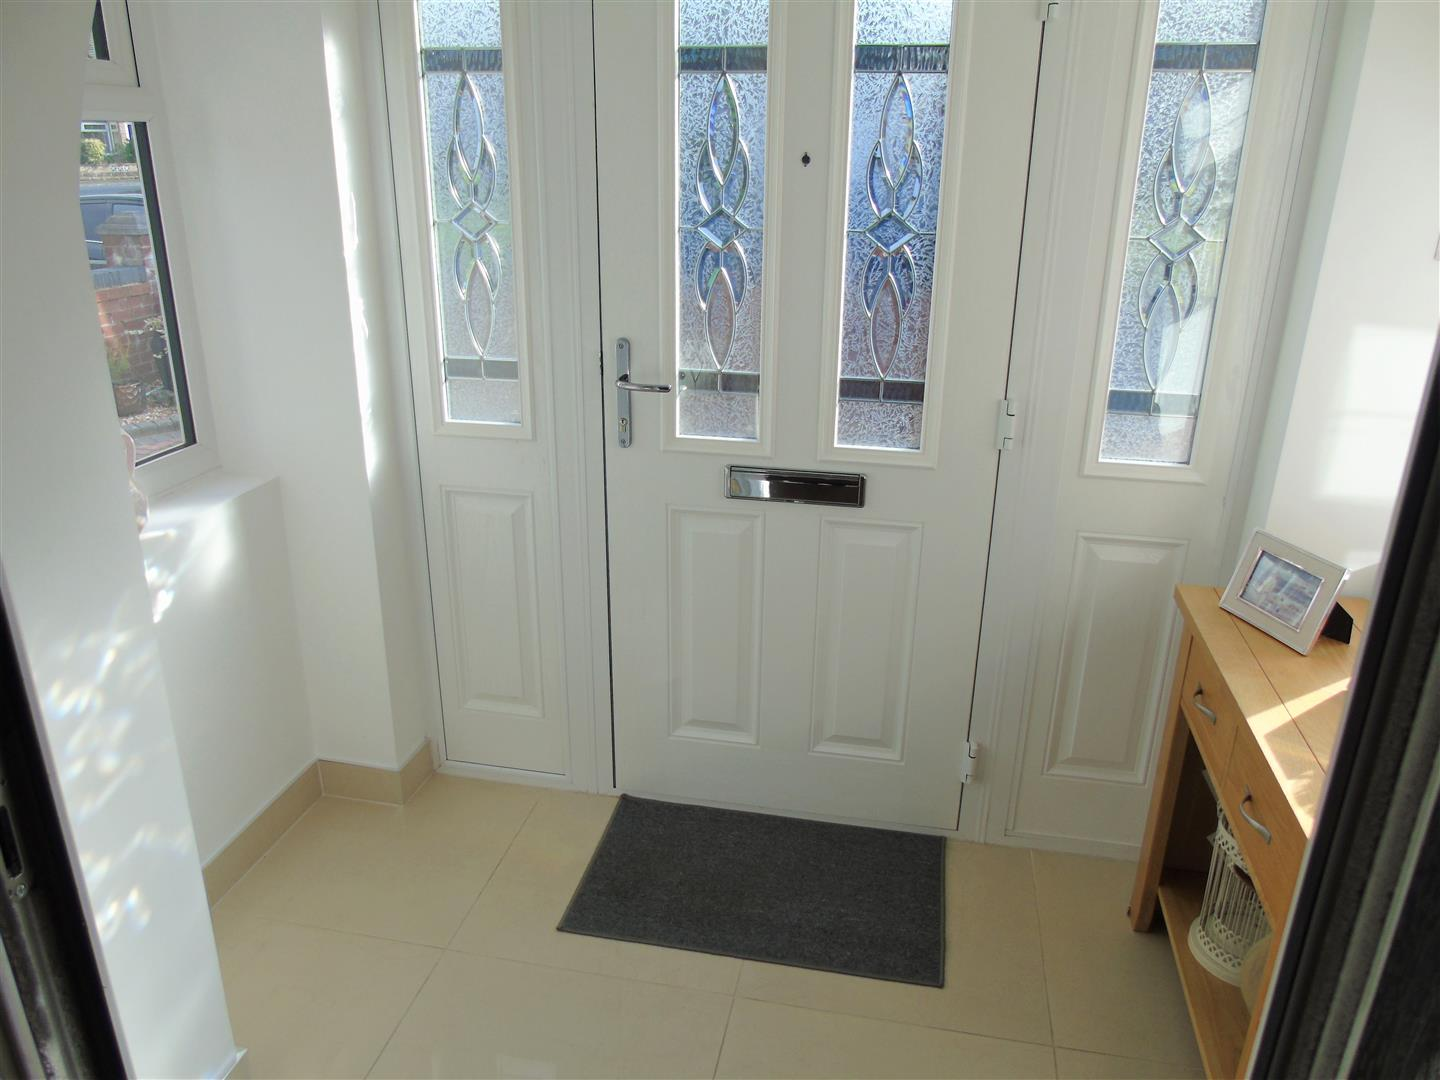 3 Bedrooms, House - Semi-Detached, Wango Lane, Aintree Village, Liverpool